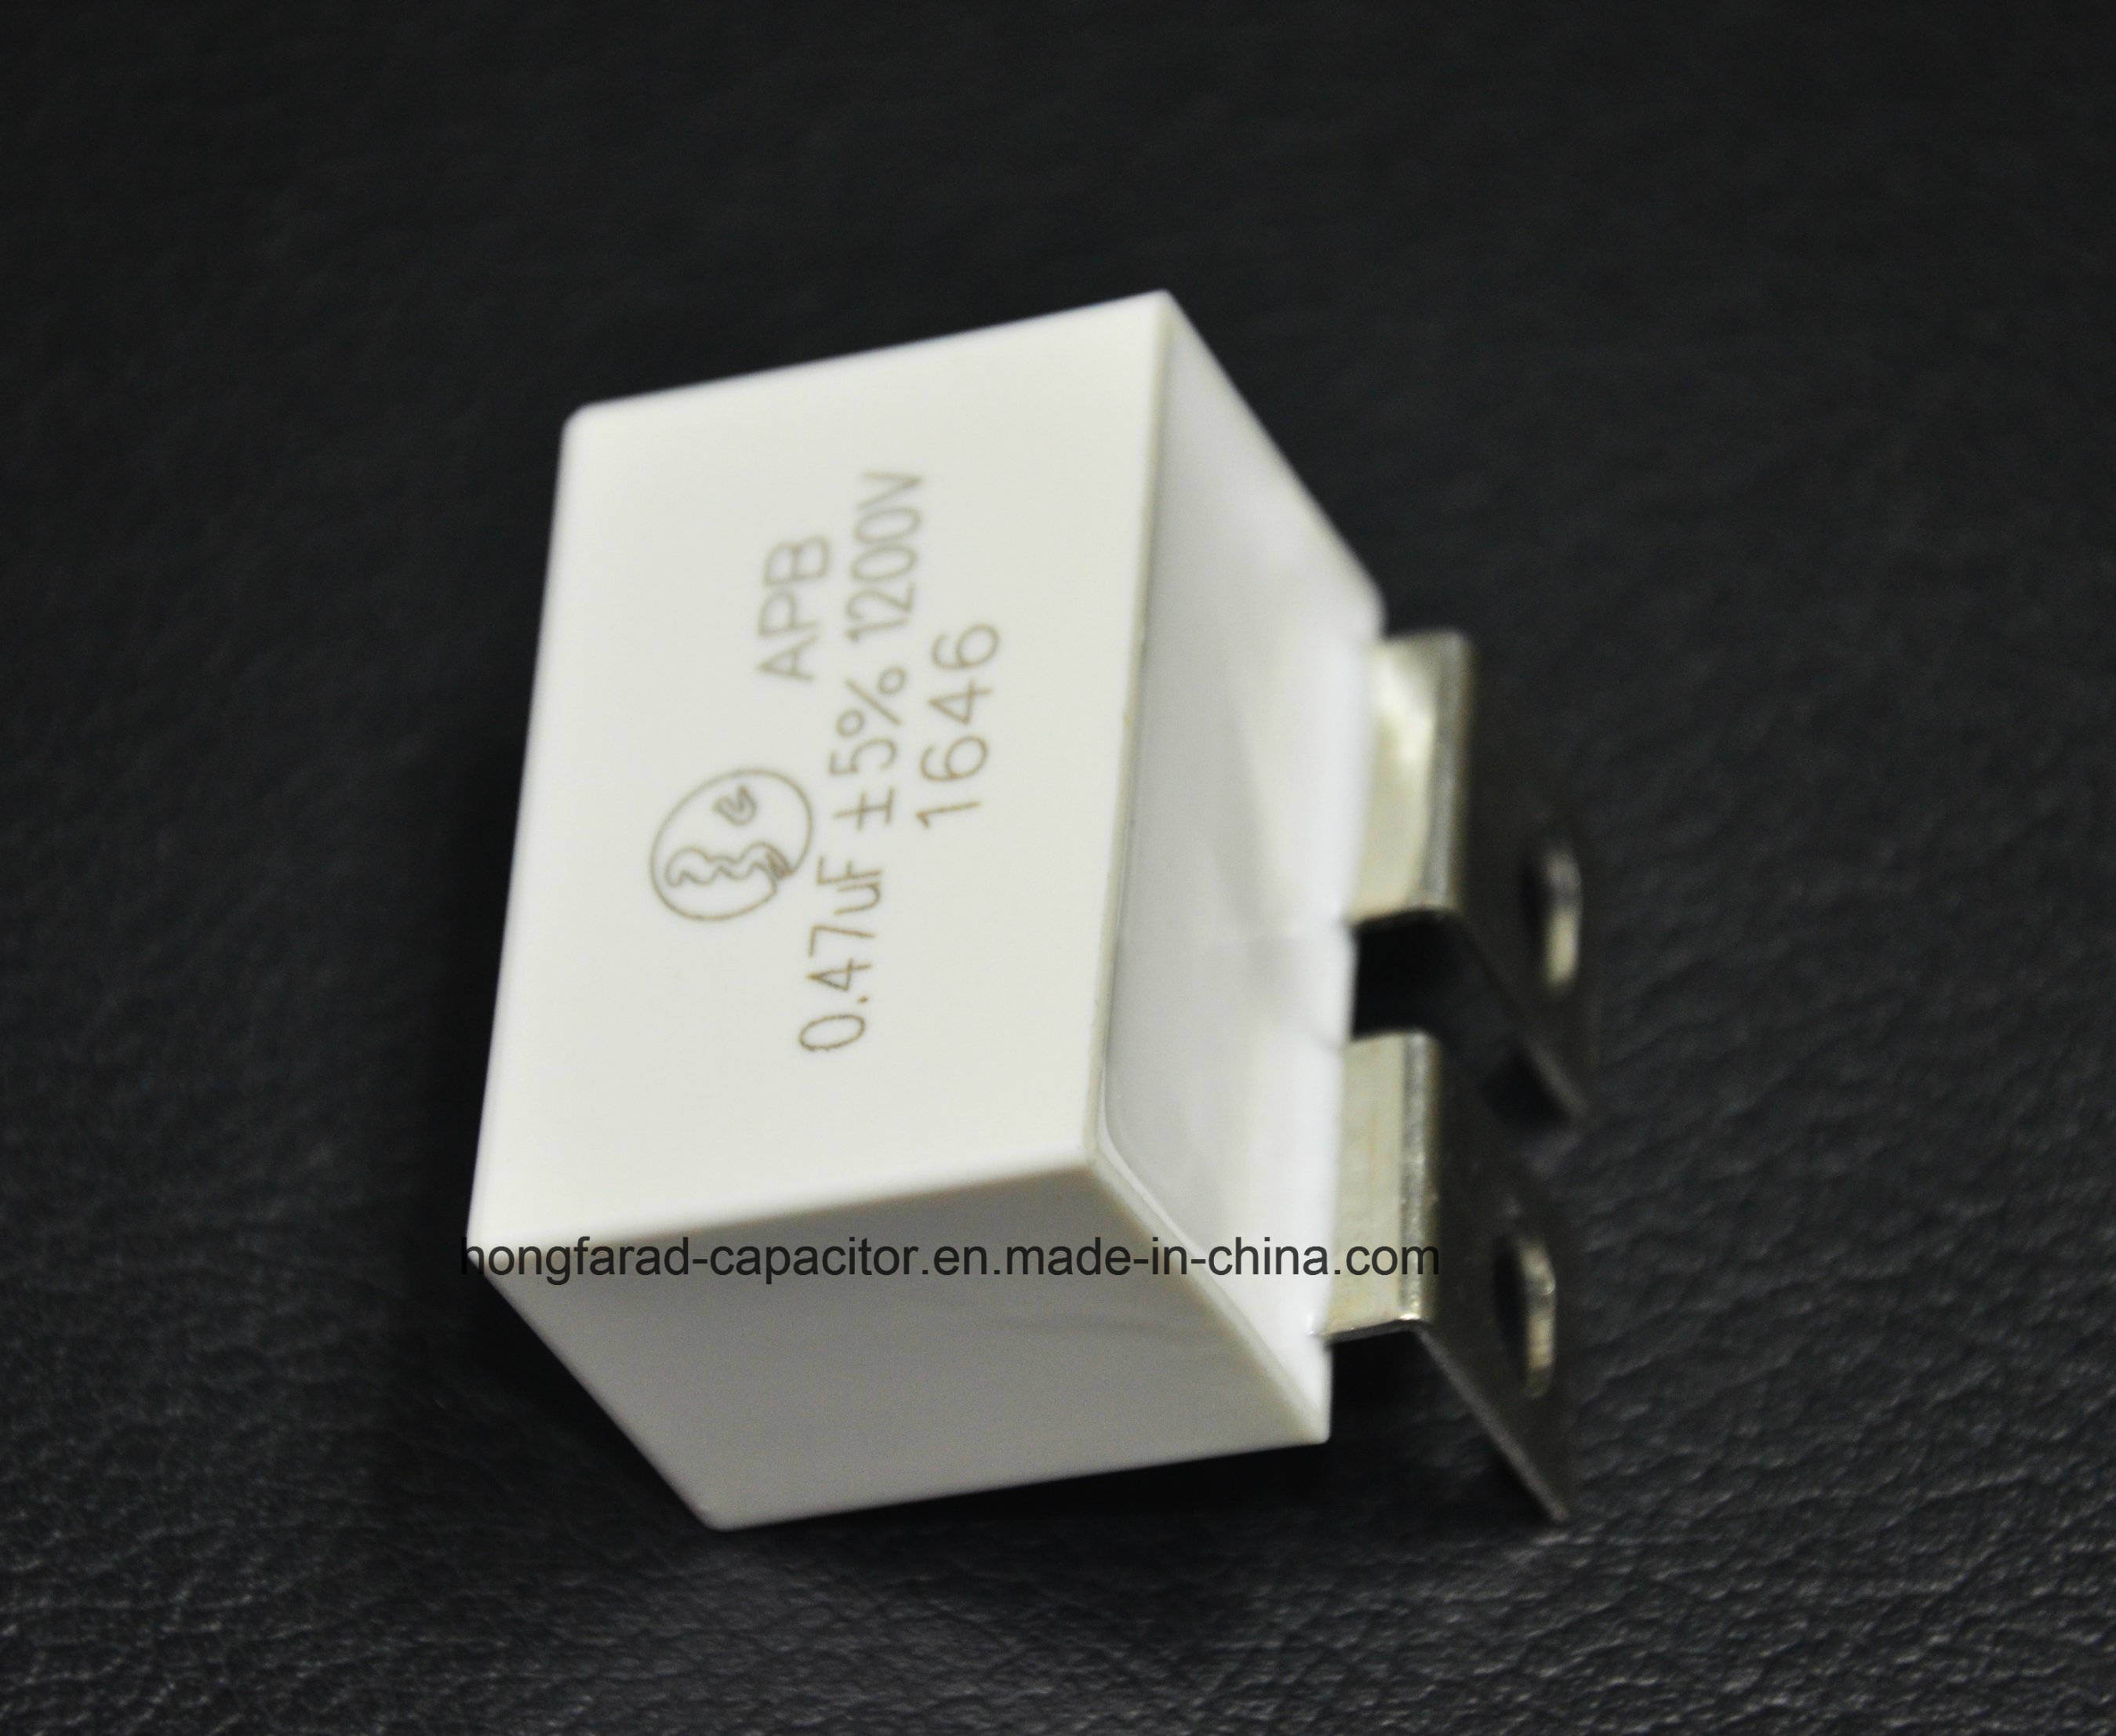 Sewing Machine Capacitor IGBT Snubber Capacitor Converter and Inverter for Switch Power Supply